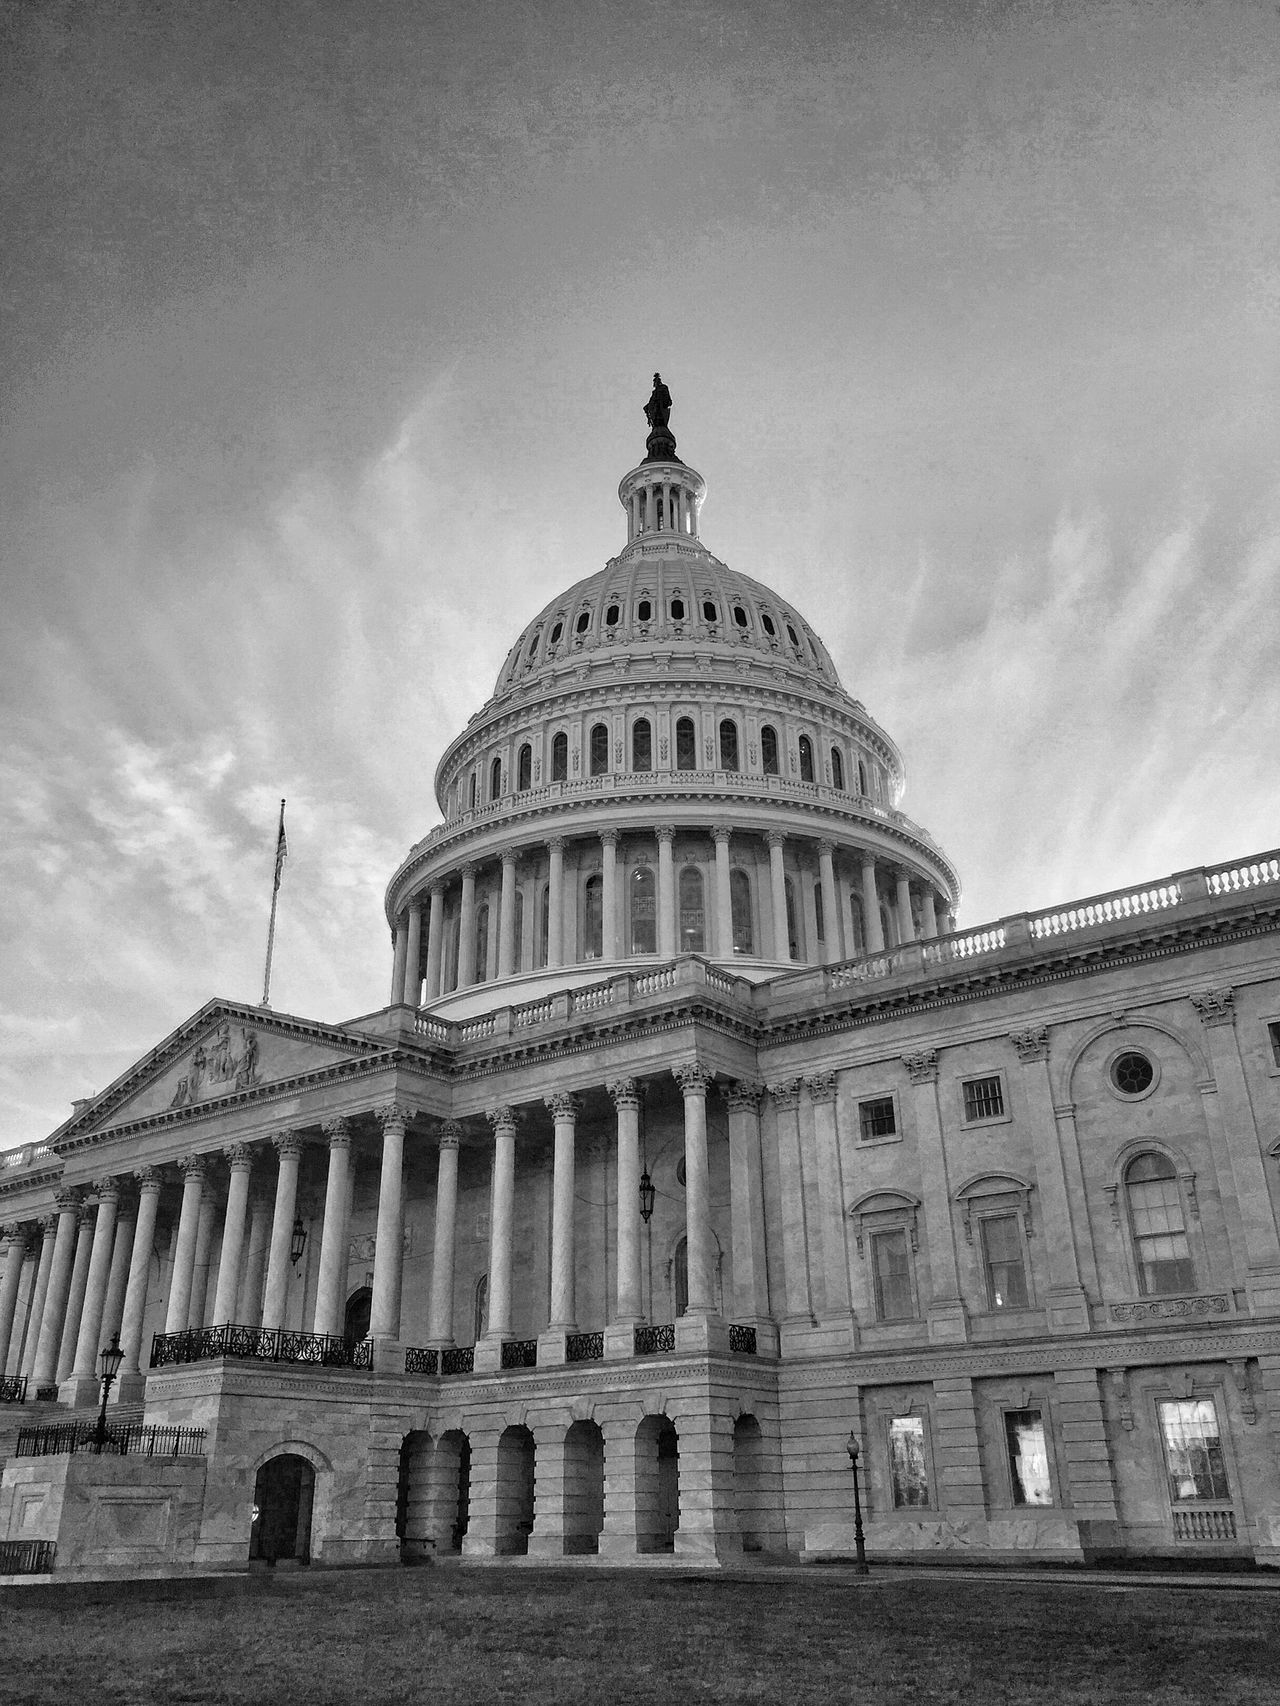 Government Dome City Architecture Building Exterior Low Angle View Sky No People History Cultures Outdoors Travel Destinations Built Structure Politics Day Black And White Blackandwhite Monochrome Washington, D. C. JoMo Photo IPhoneography Street Photography Streetphotography